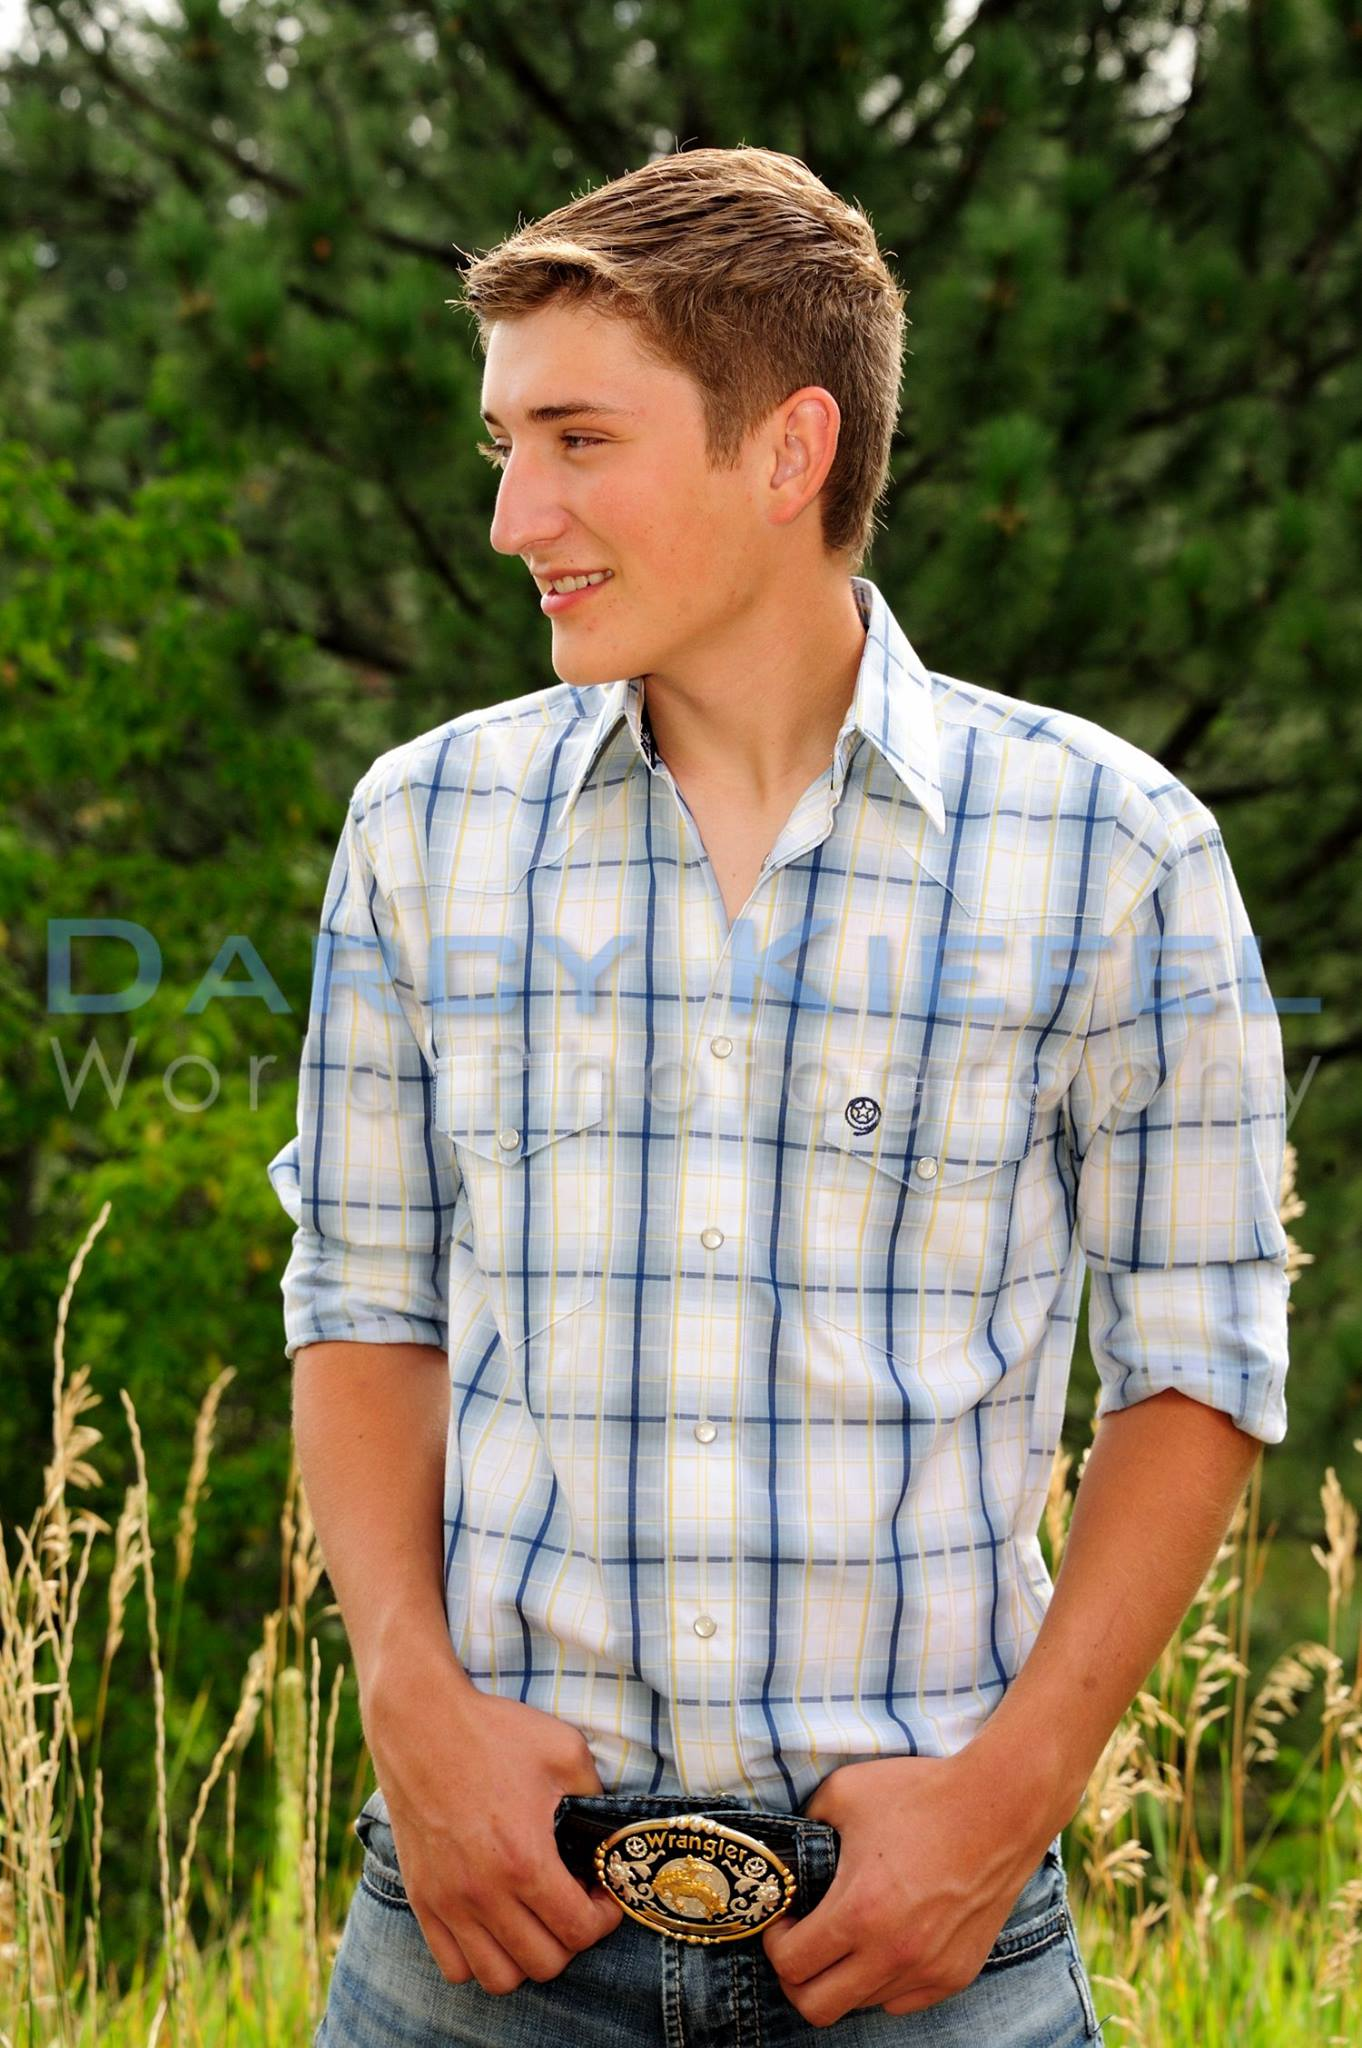 iwot high school senior portrait